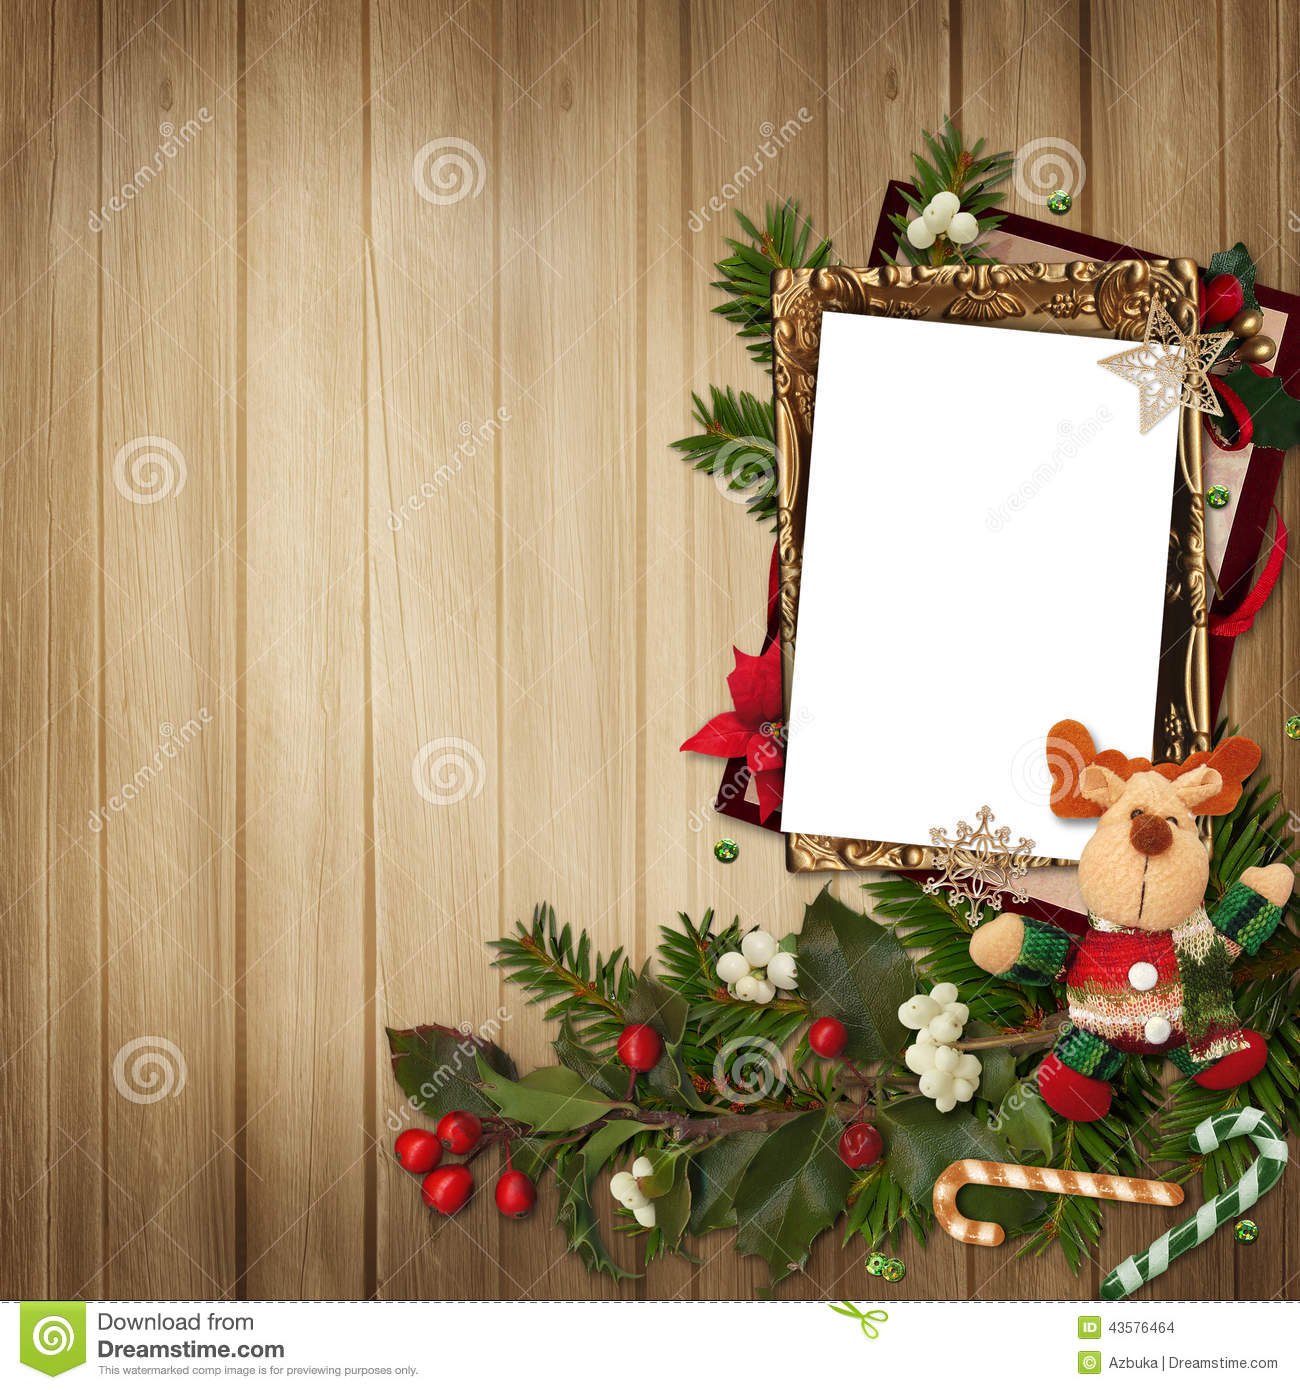 Frame With Gorgeous Christmas Decorations On Wooden